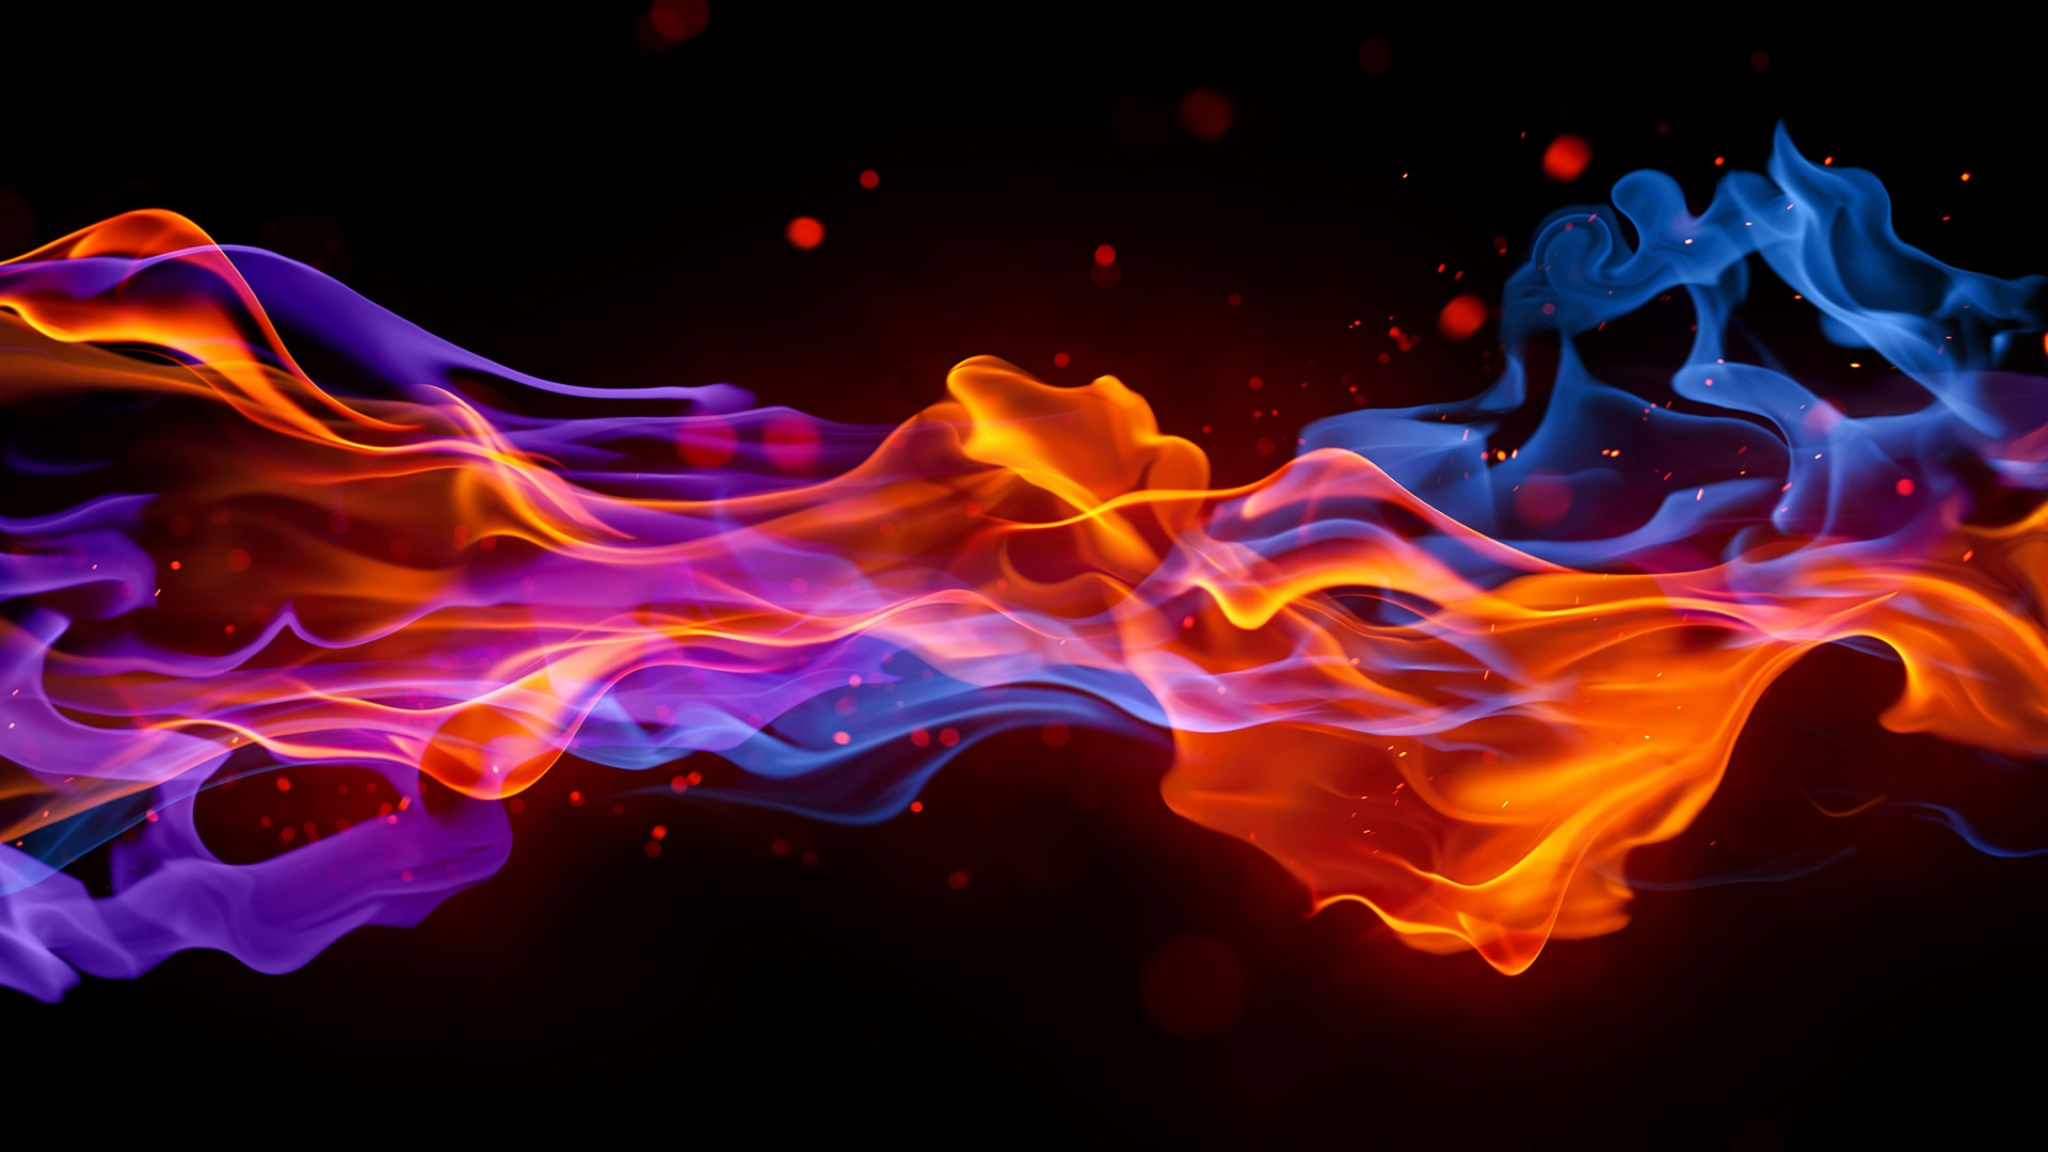 Wallpaper 2048x1152 Smoke Fire Bright Colorful Background HD HD 2048x1152